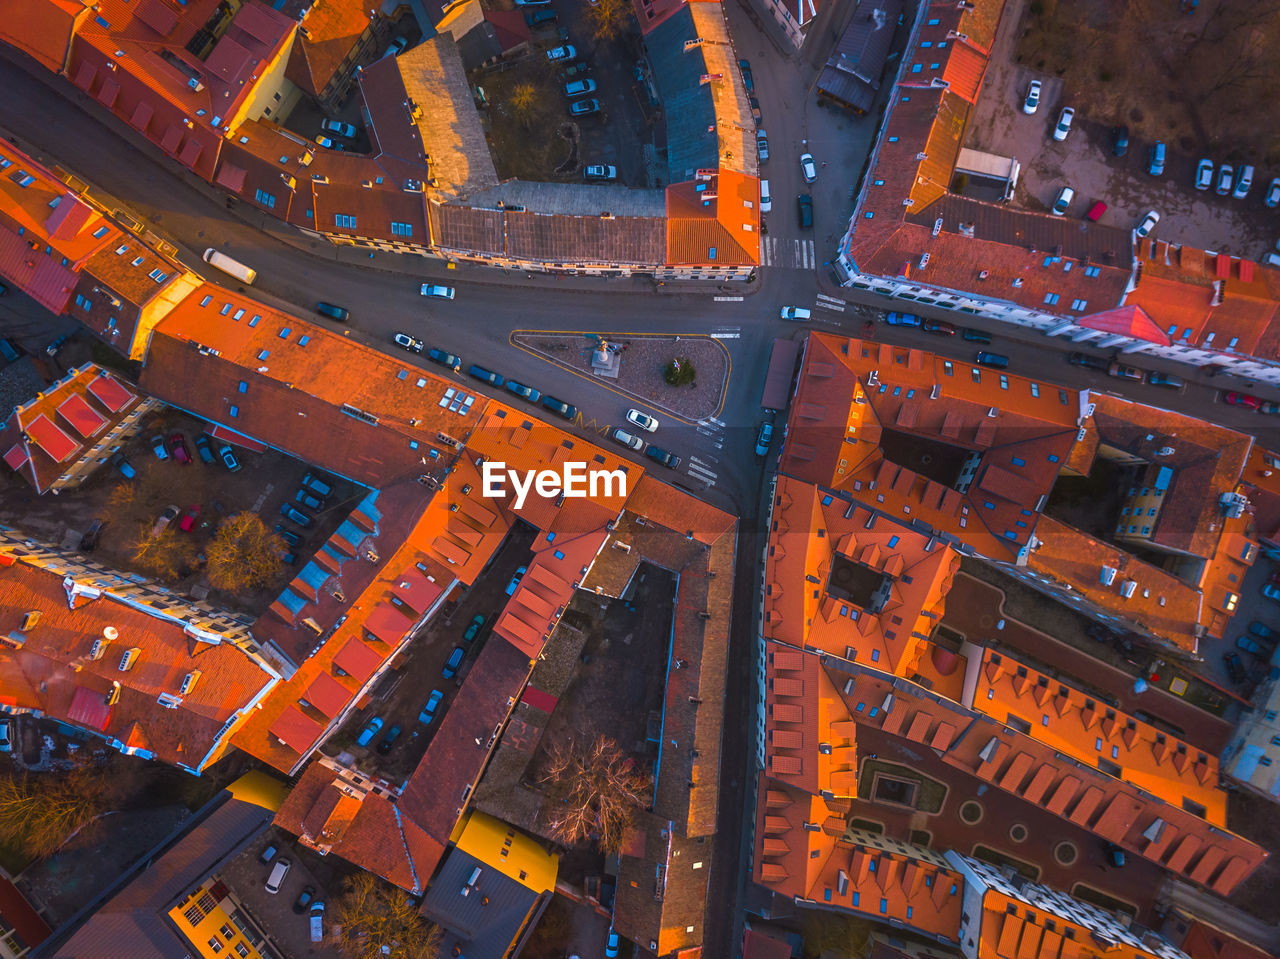 architecture, building exterior, high angle view, built structure, city, no people, roof, aerial view, transportation, illuminated, night, cityscape, road, outdoors, building, residential district, full frame, orange color, mode of transportation, street